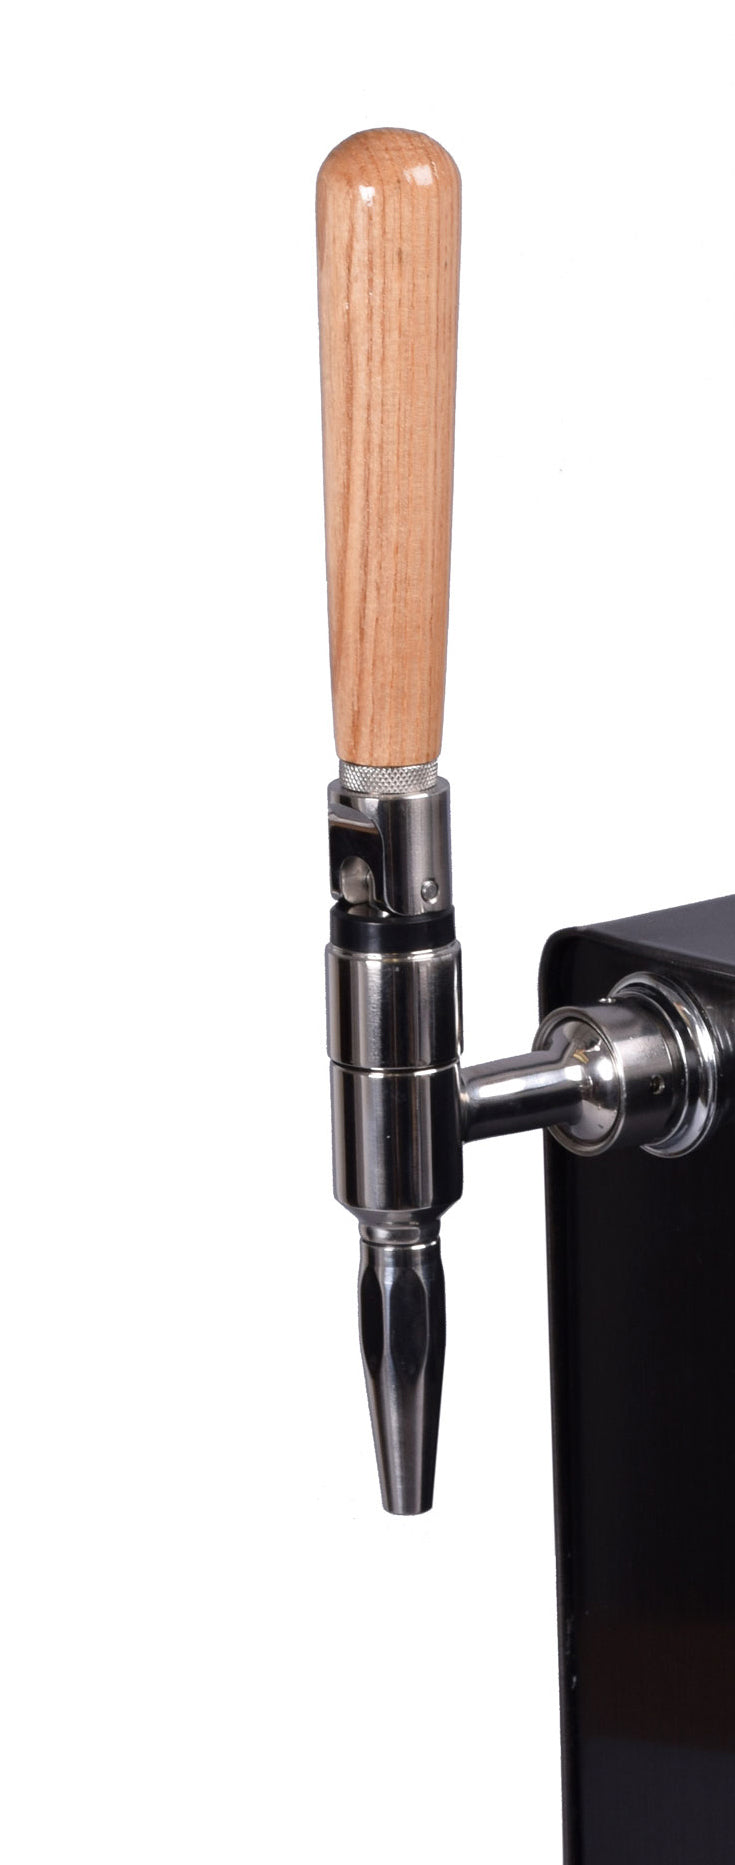 Wooden Tap Handle for the Cold Pro Nitro 2™ - Brewista